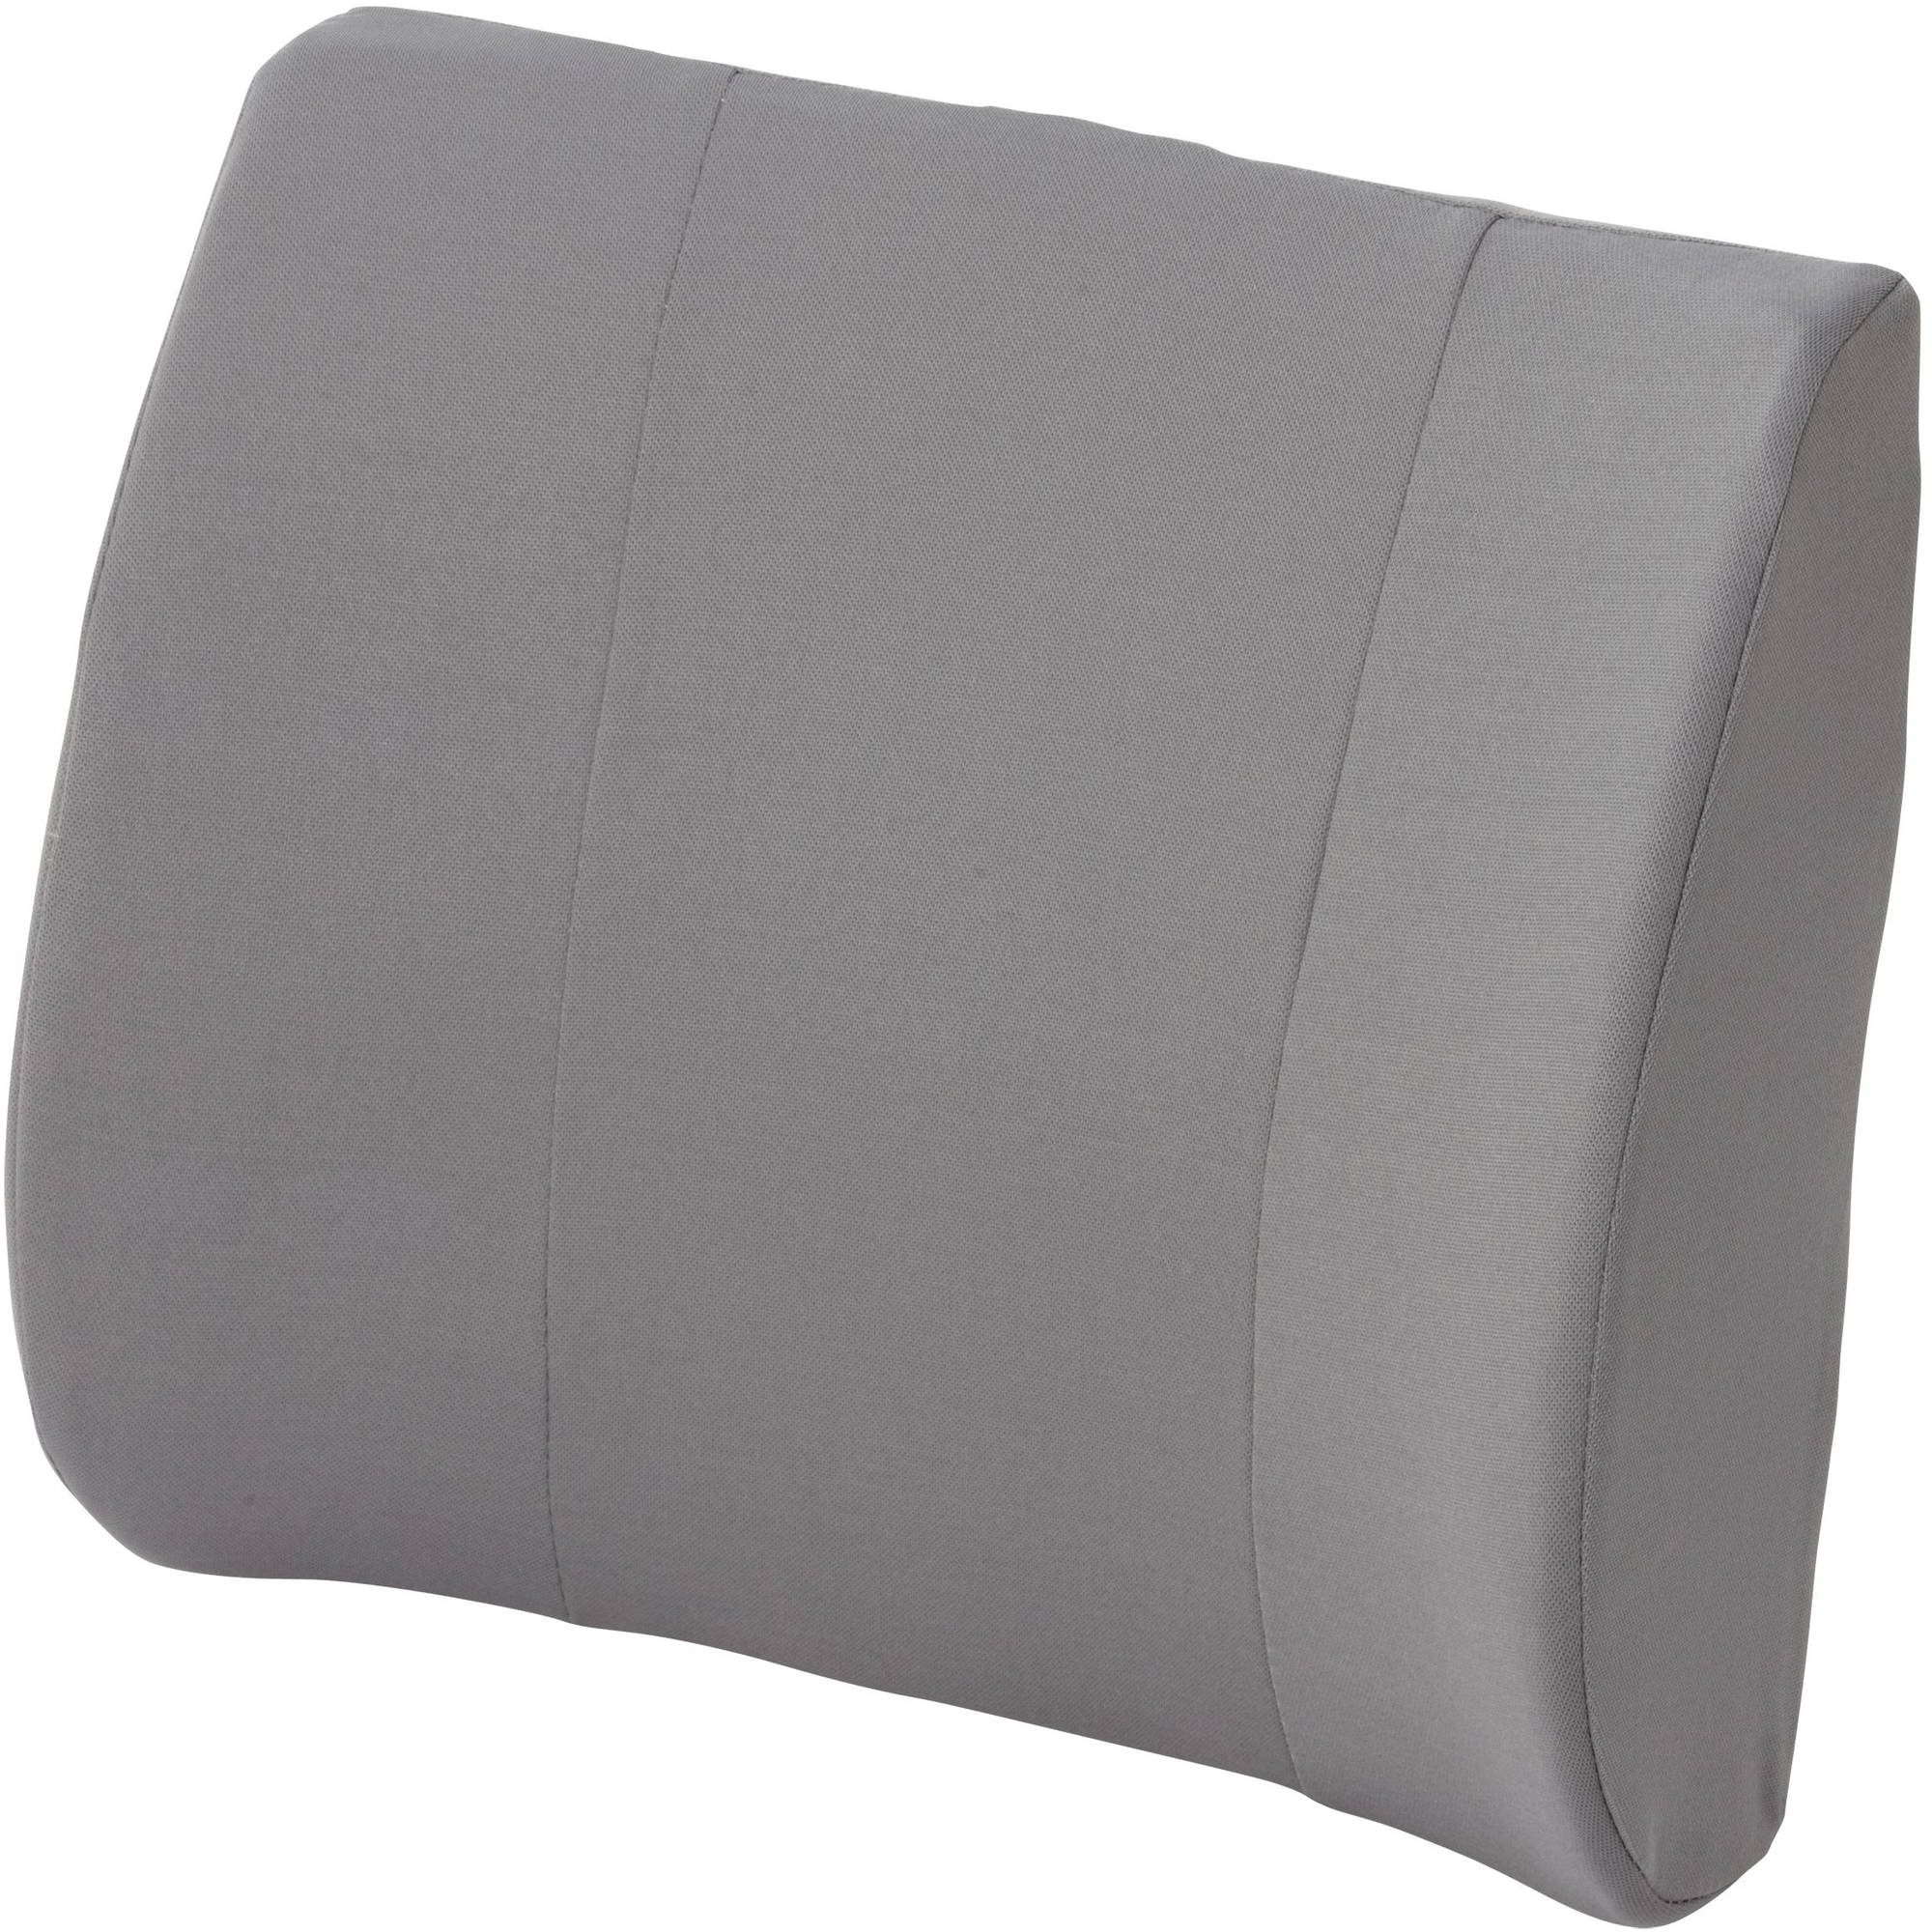 DMI Relax a Bac Lumbar Back Support Cushion Pillow with Insert and